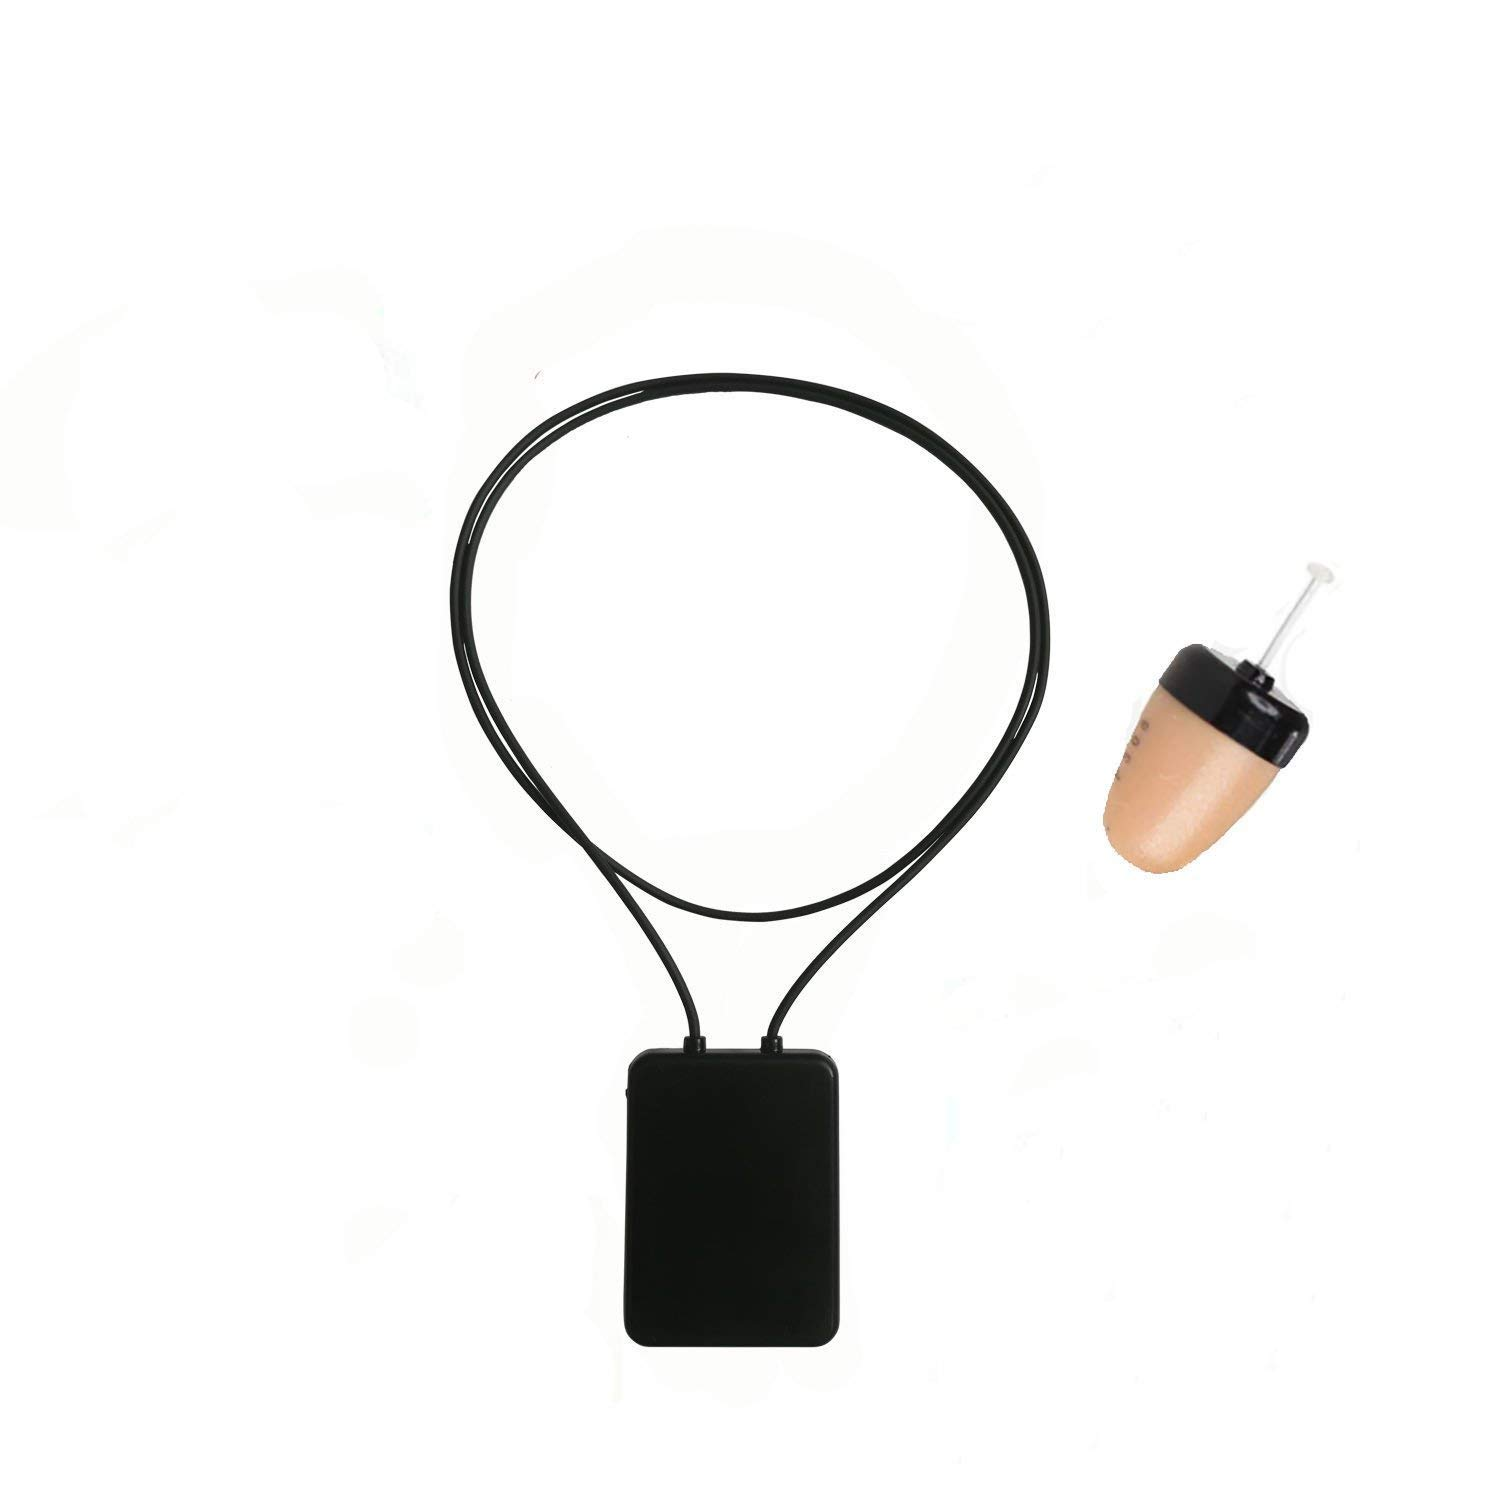 4.5w output with voice adjustable Micro Earpiece GSM Box Loop spy earpiece